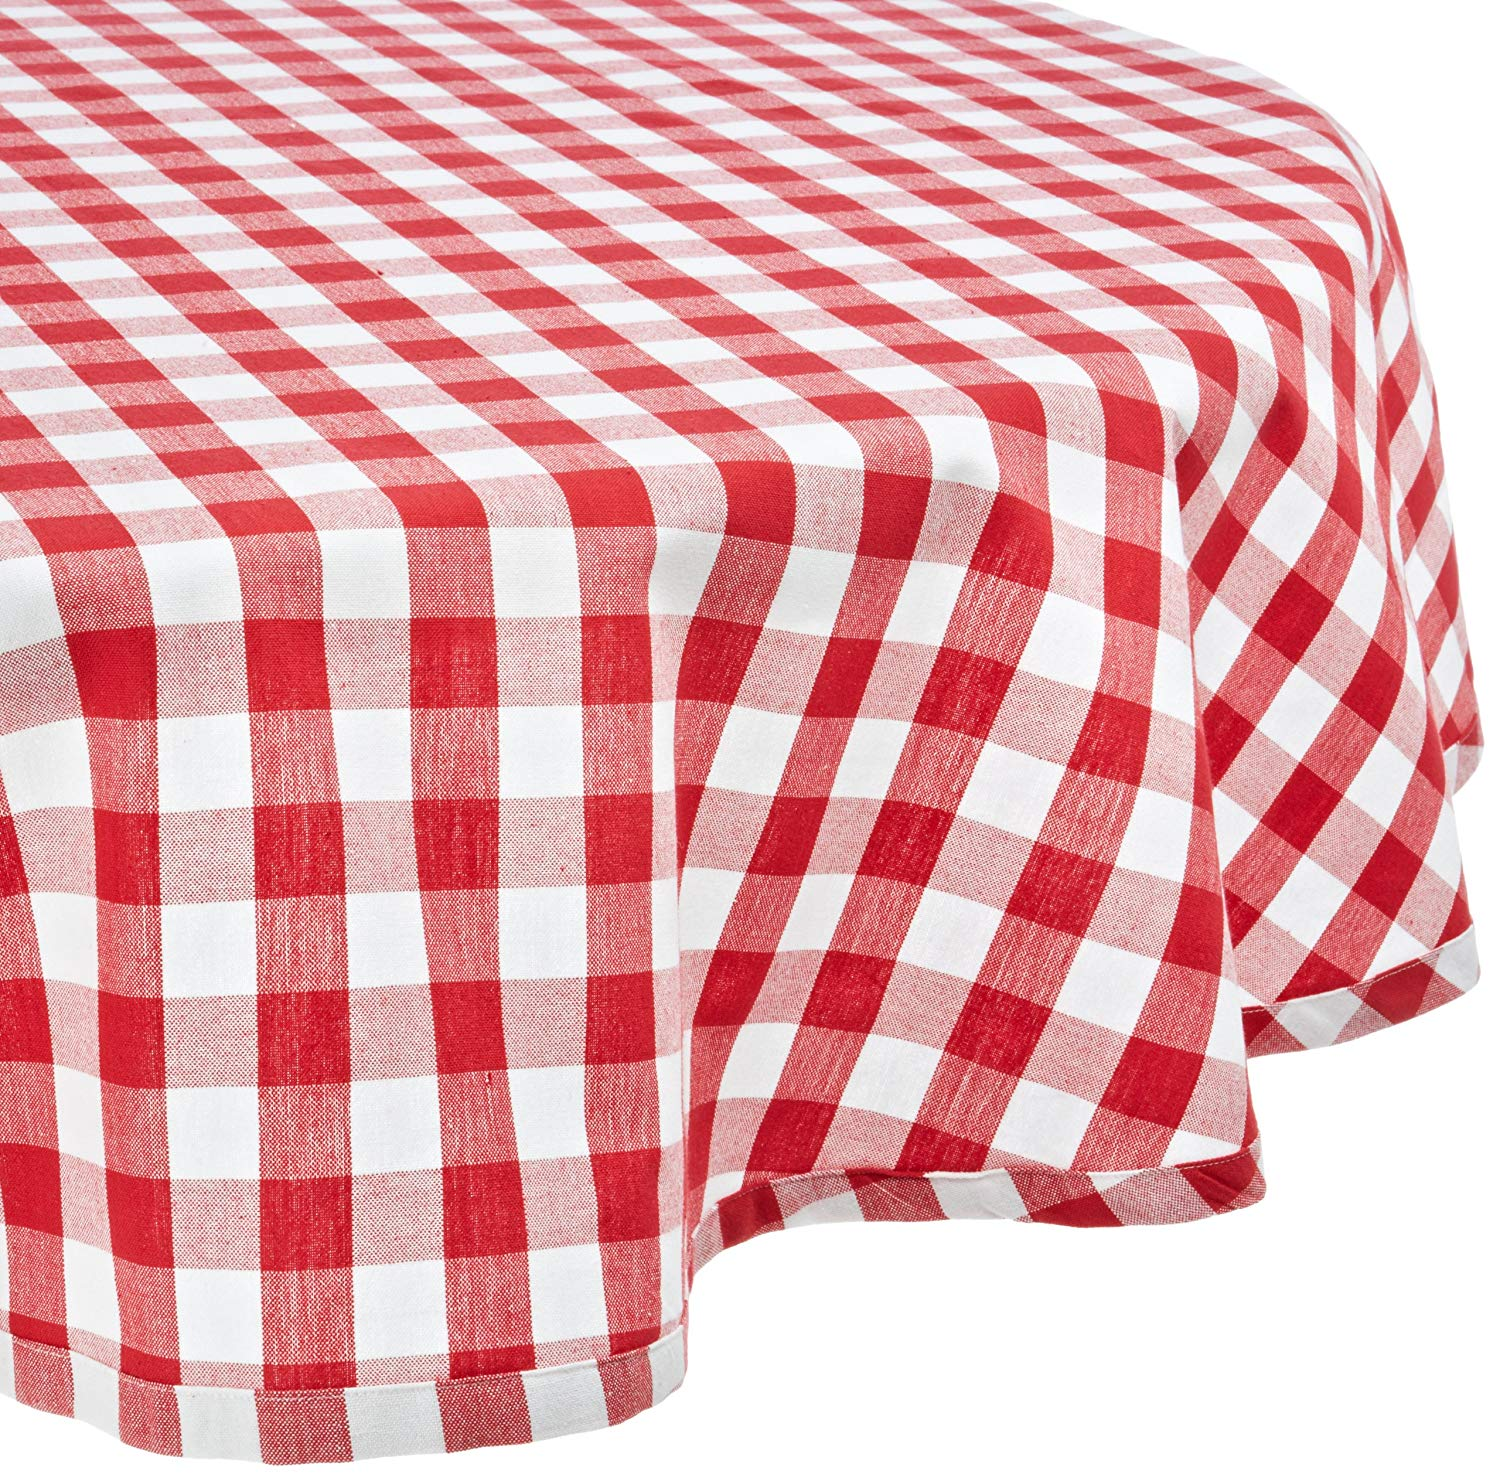 dii round cotton tablecloth red white check accent perfect for fall thanksgiving farmhouse decor dinner parties christmas nics potlucks mosaic tile bistro table and chairs ikea